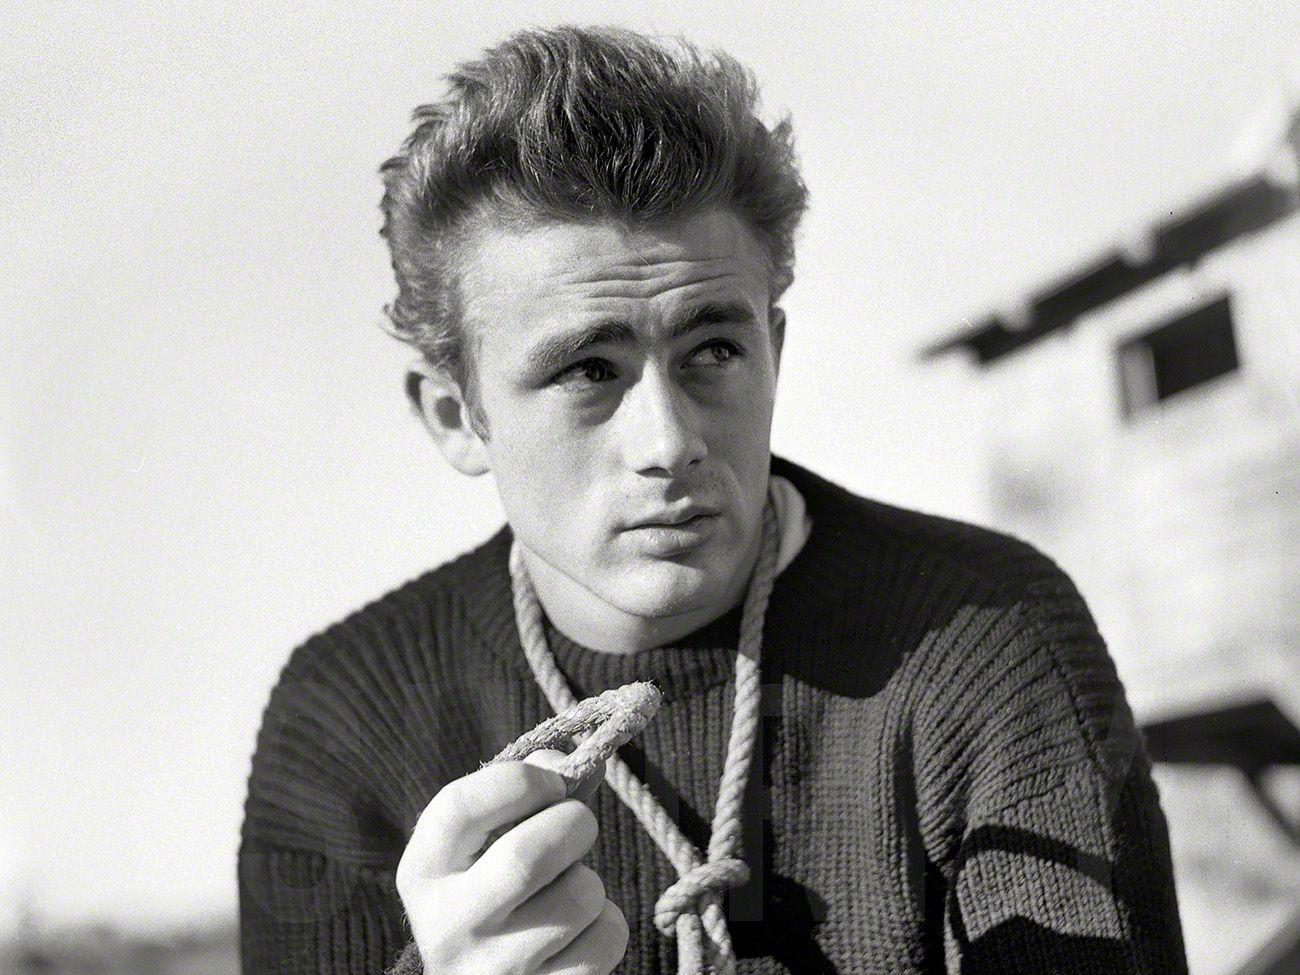 james dean rope - Google Search